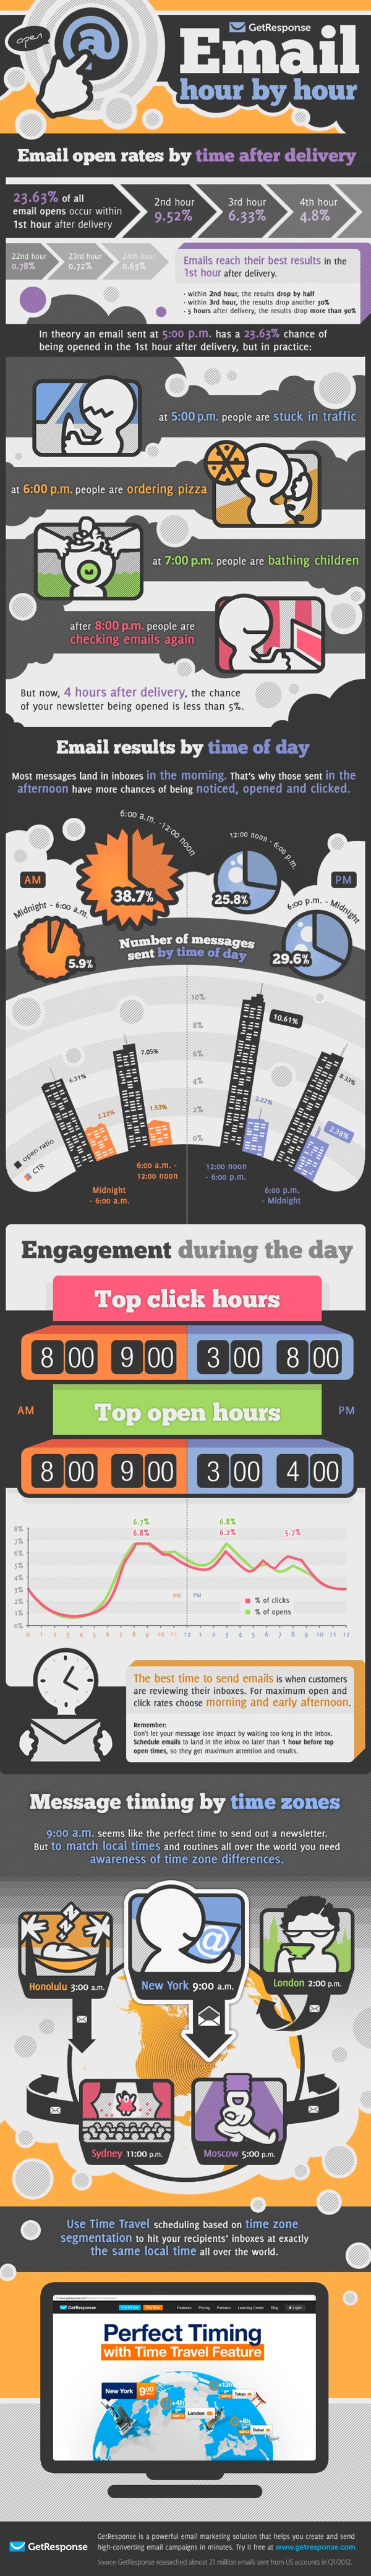 Best-Time-To-Share-Infographic